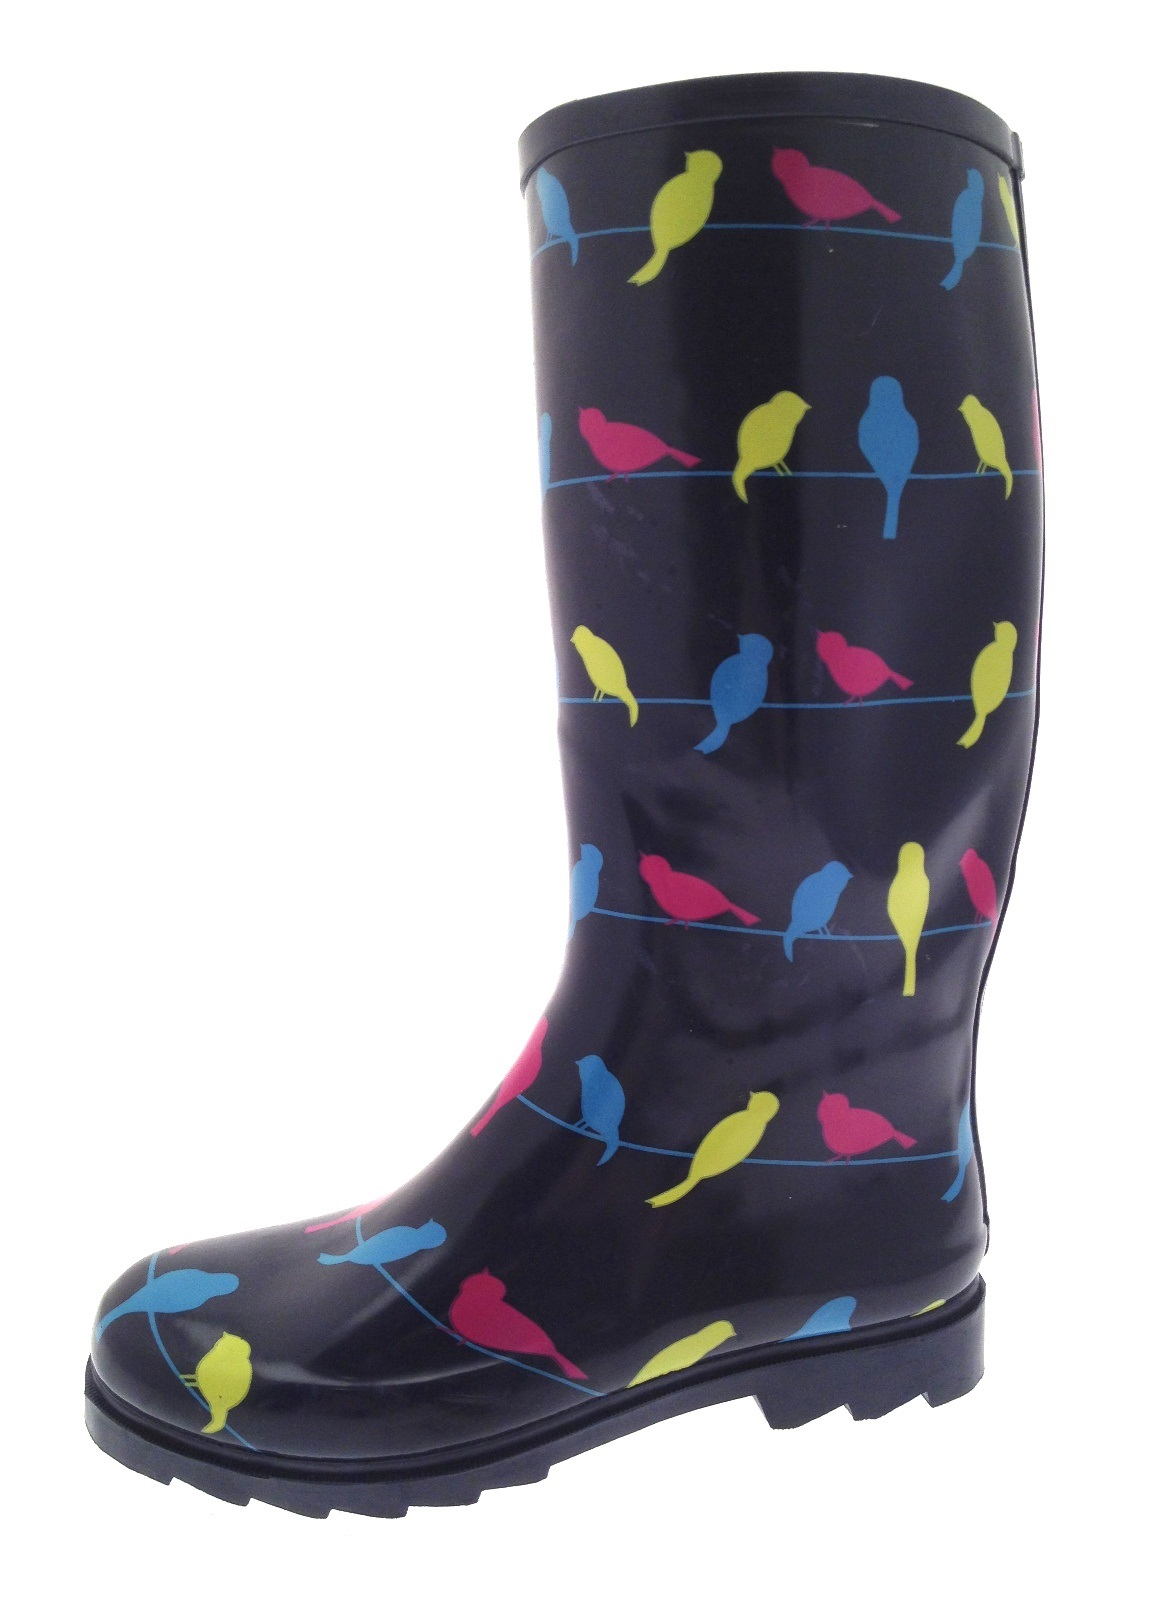 New So While You Might Normally Be Thinking About How Much Longer Youll Be Forced To Put Up With Snow, Your Main Concern These Days Might Be Finding Cute Rain Boots Under $50  2Fwwwtargetcom%2Fp%2Fwesternchiefwomenswhale